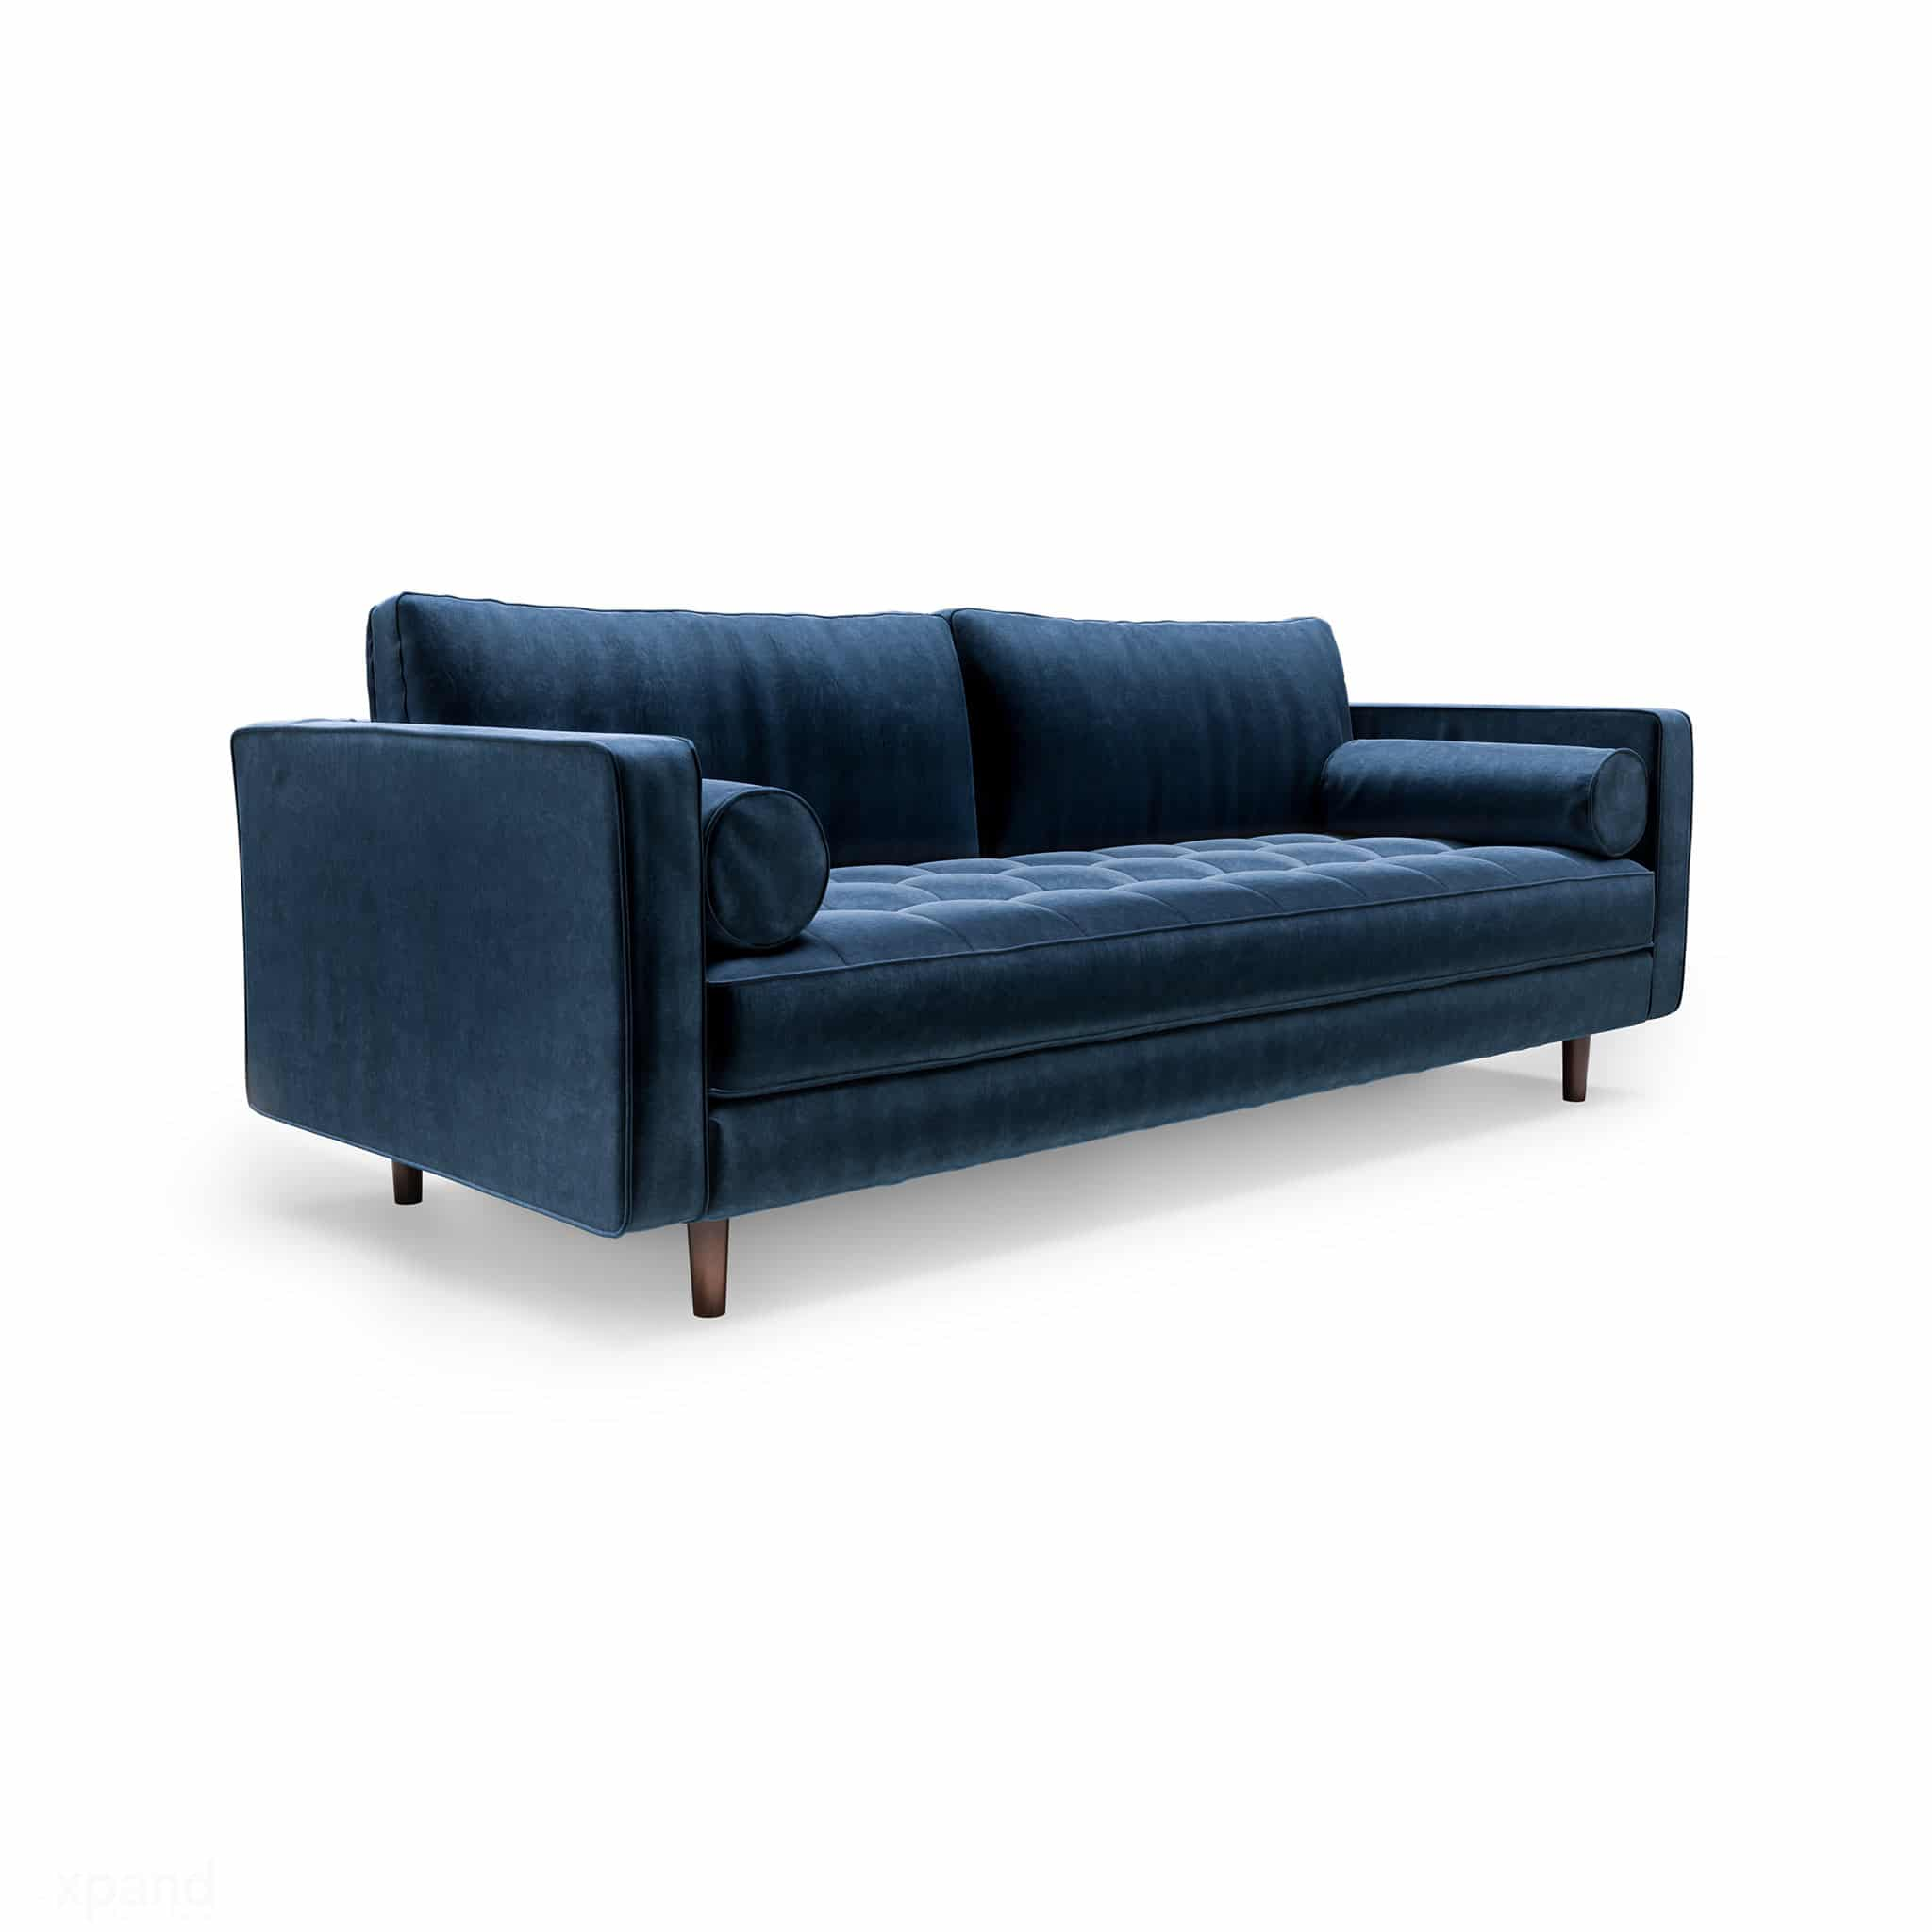 Scandormi Modern Sofa: Navy Blue mid-century tufted couch